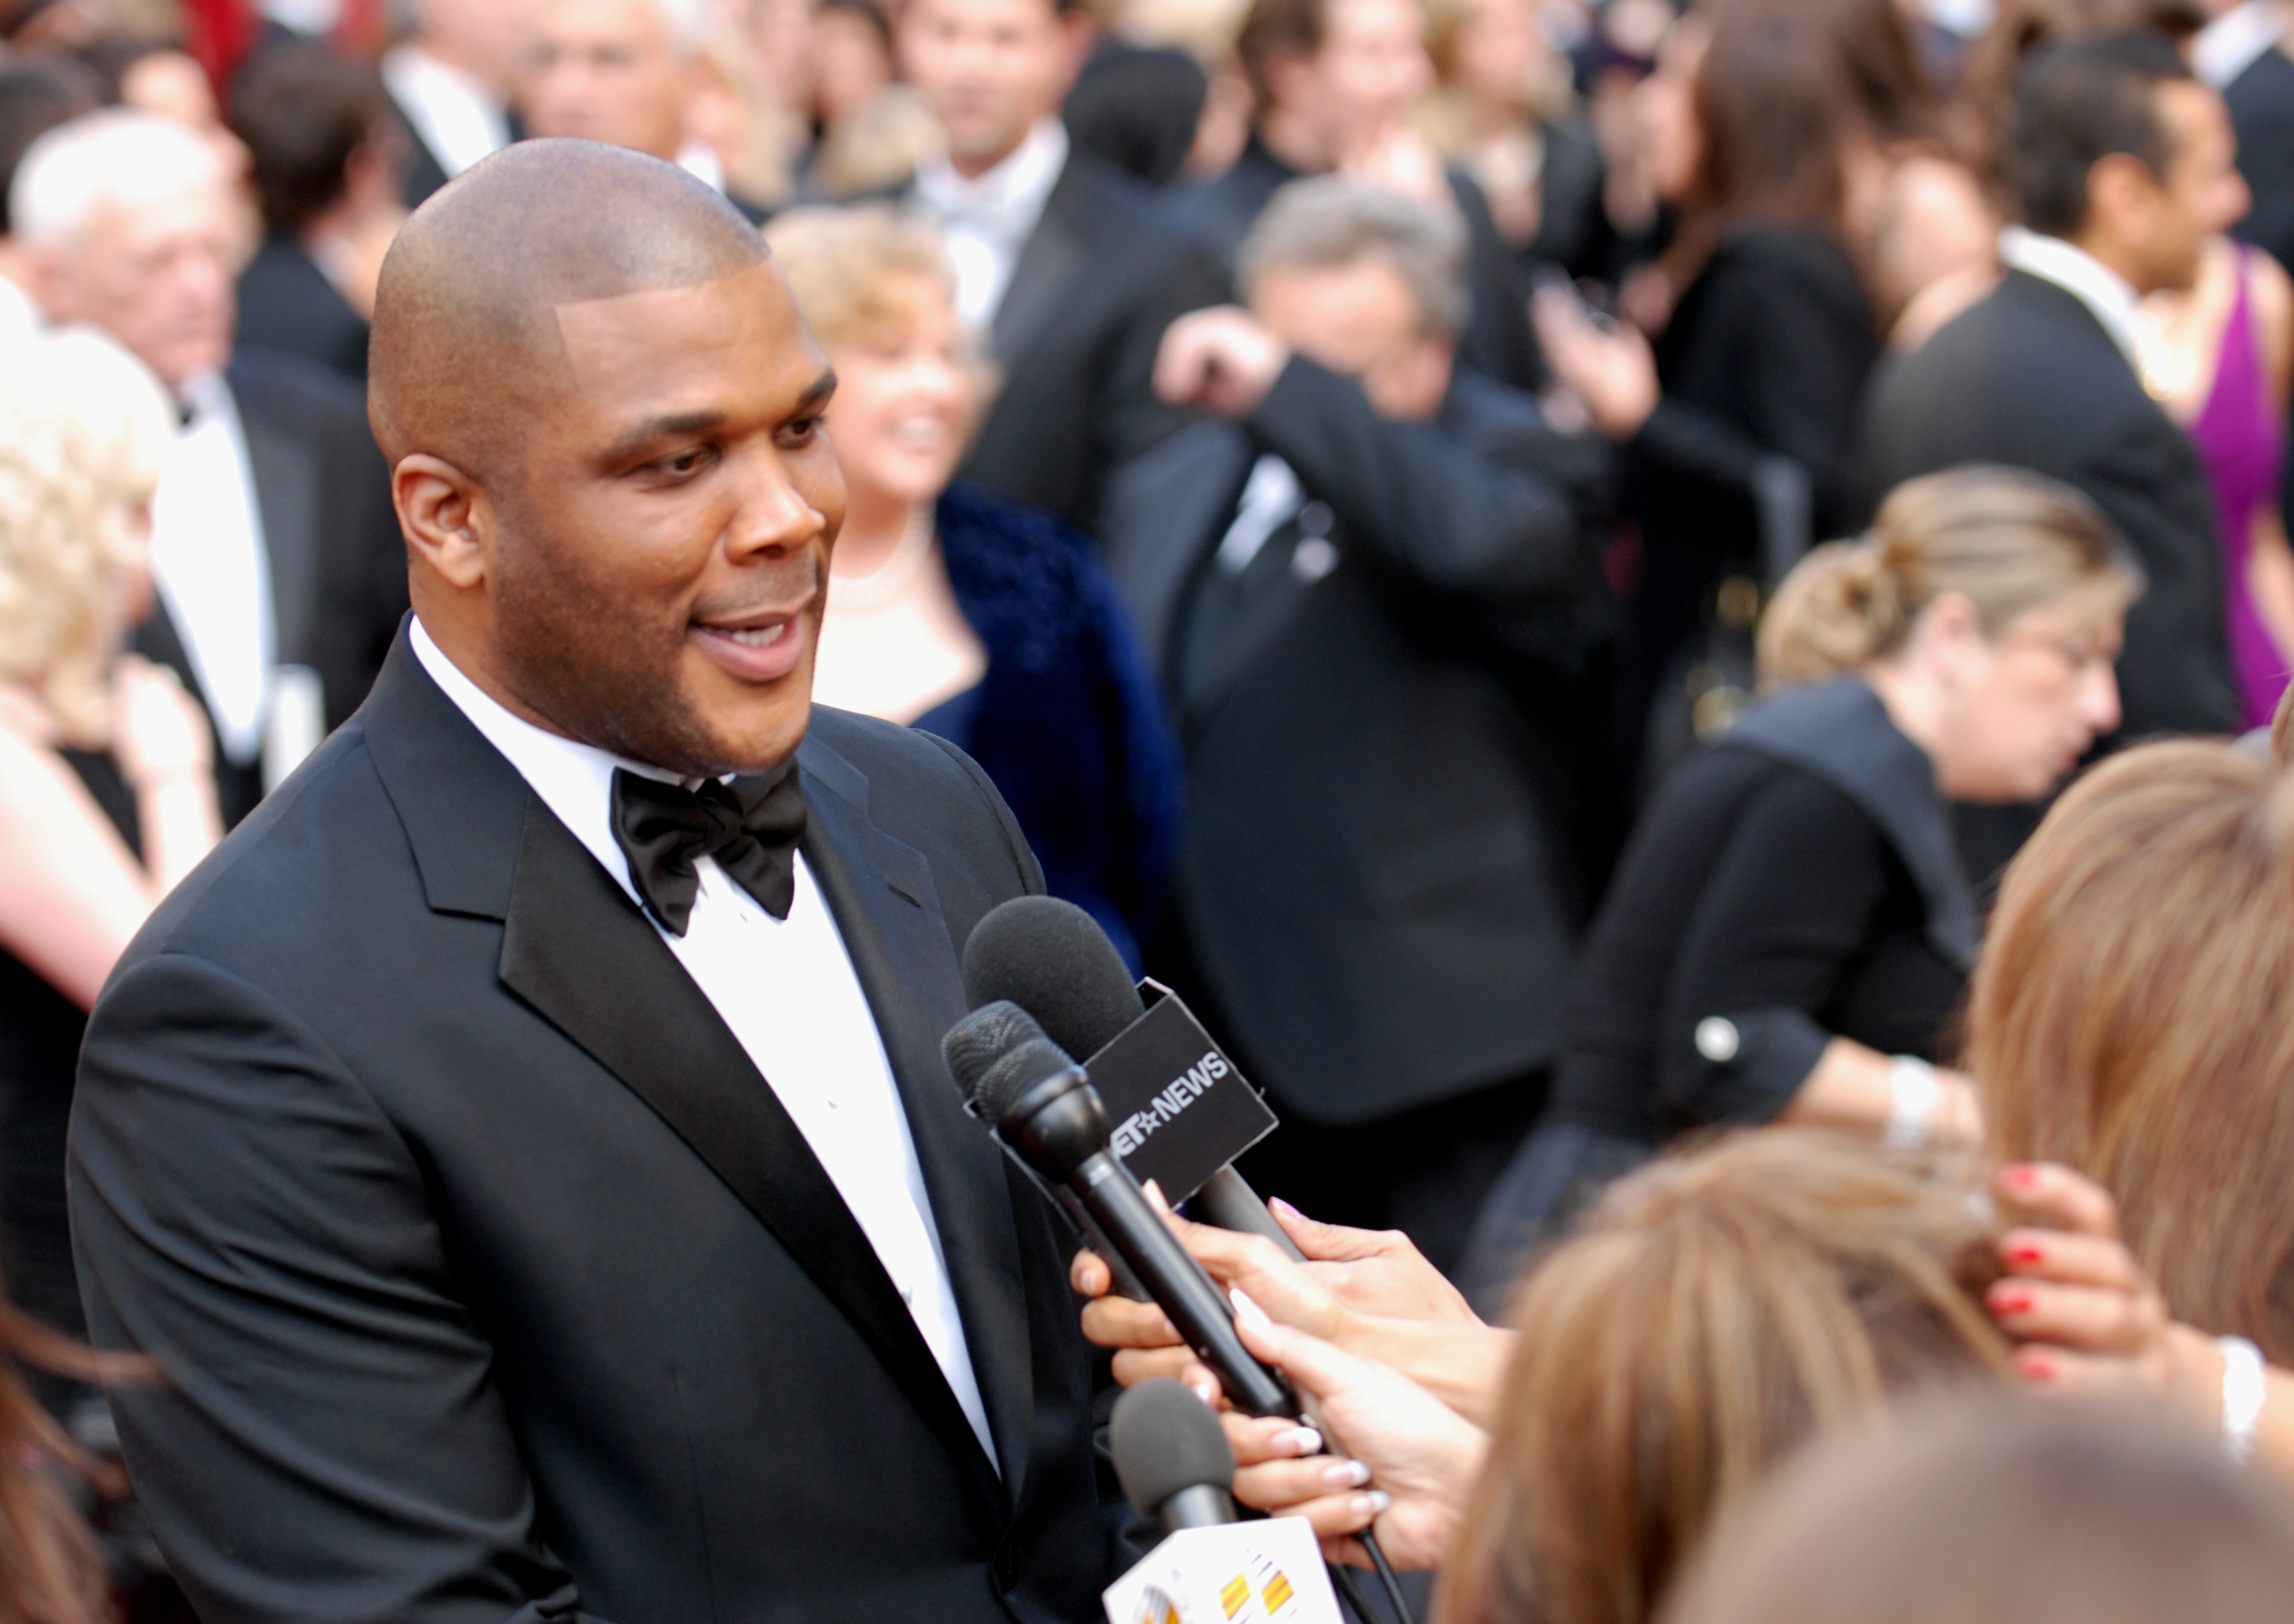 History-Making Tyler Perry Studios Has Grand Opening Gala in Atlanta with Oprah, Beyonce and More